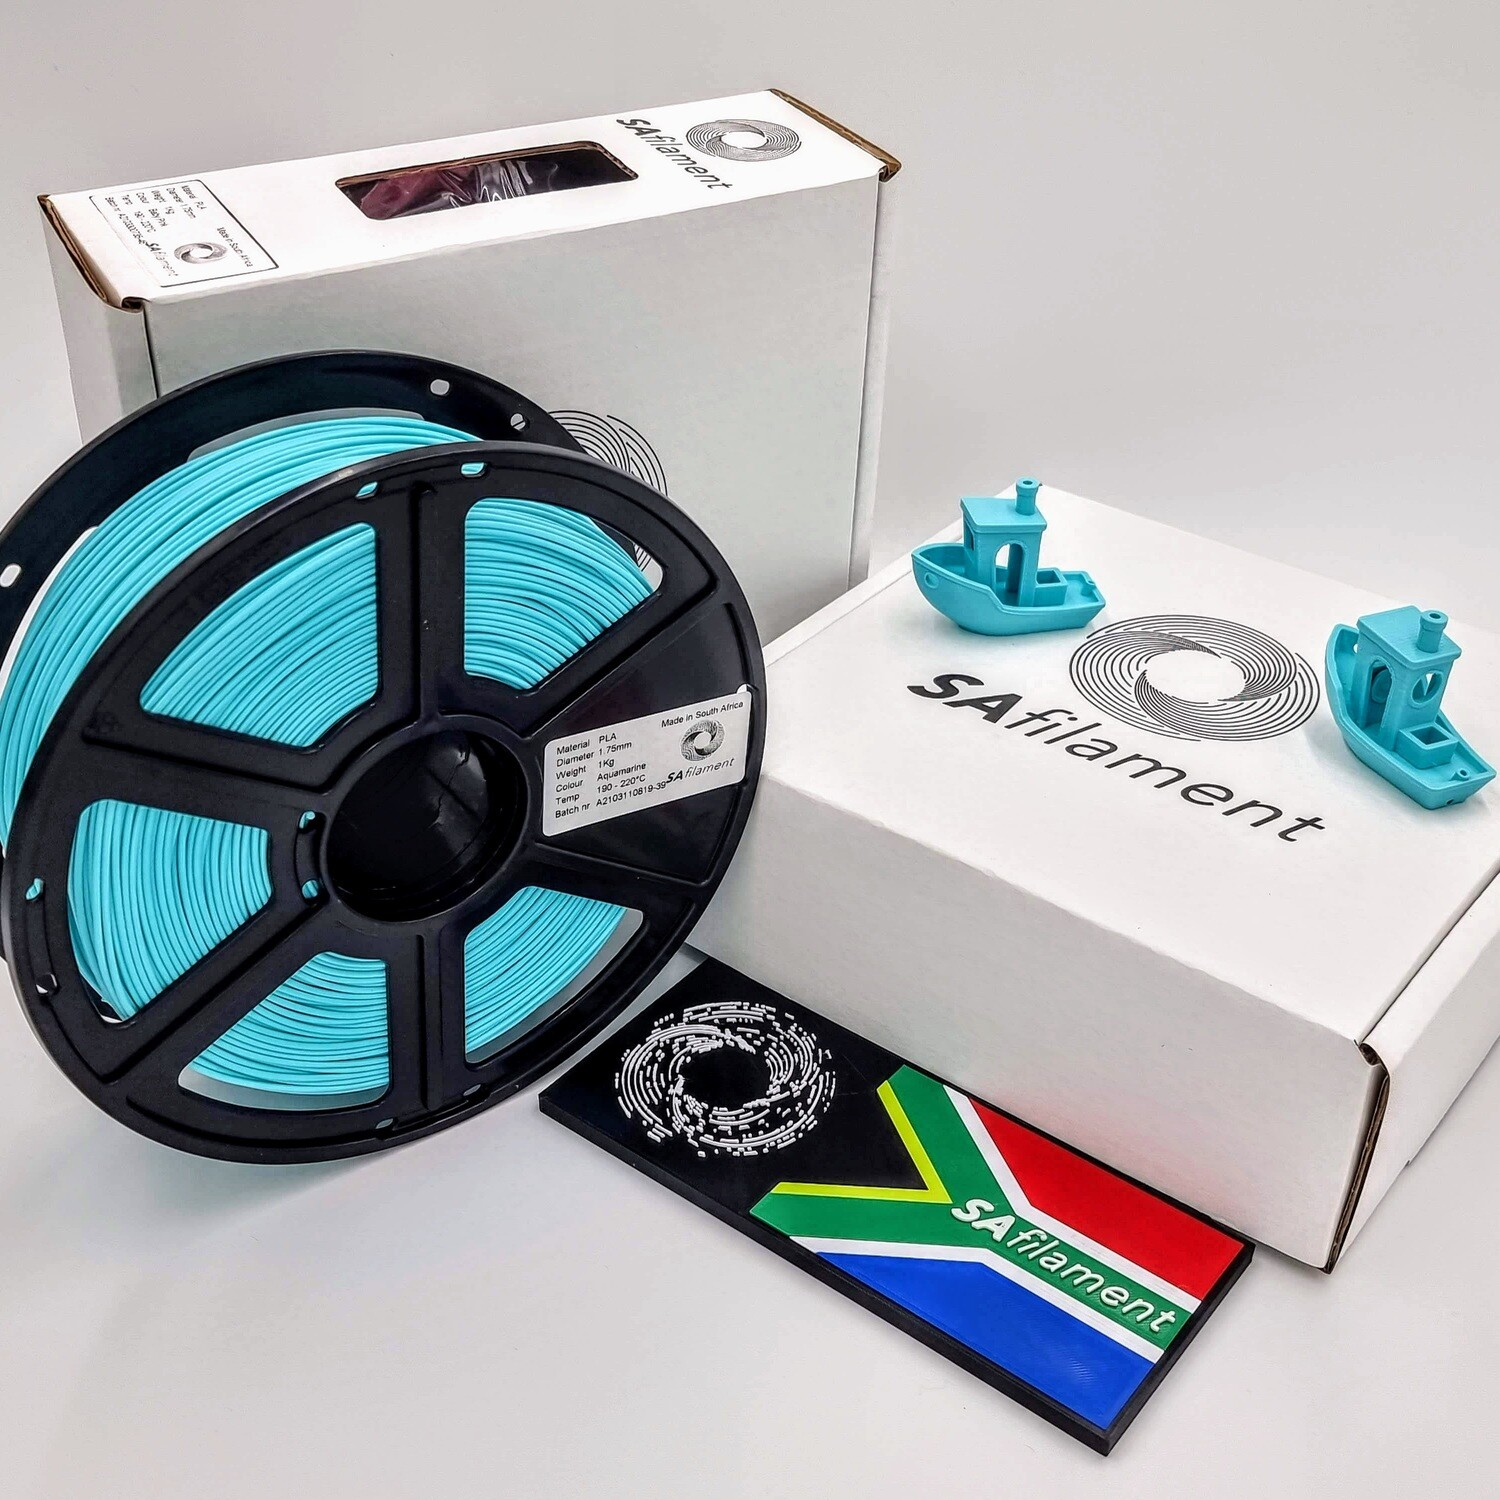 Aquamarine PLA Filament, 1Kg, 1.75mm by SA Filament